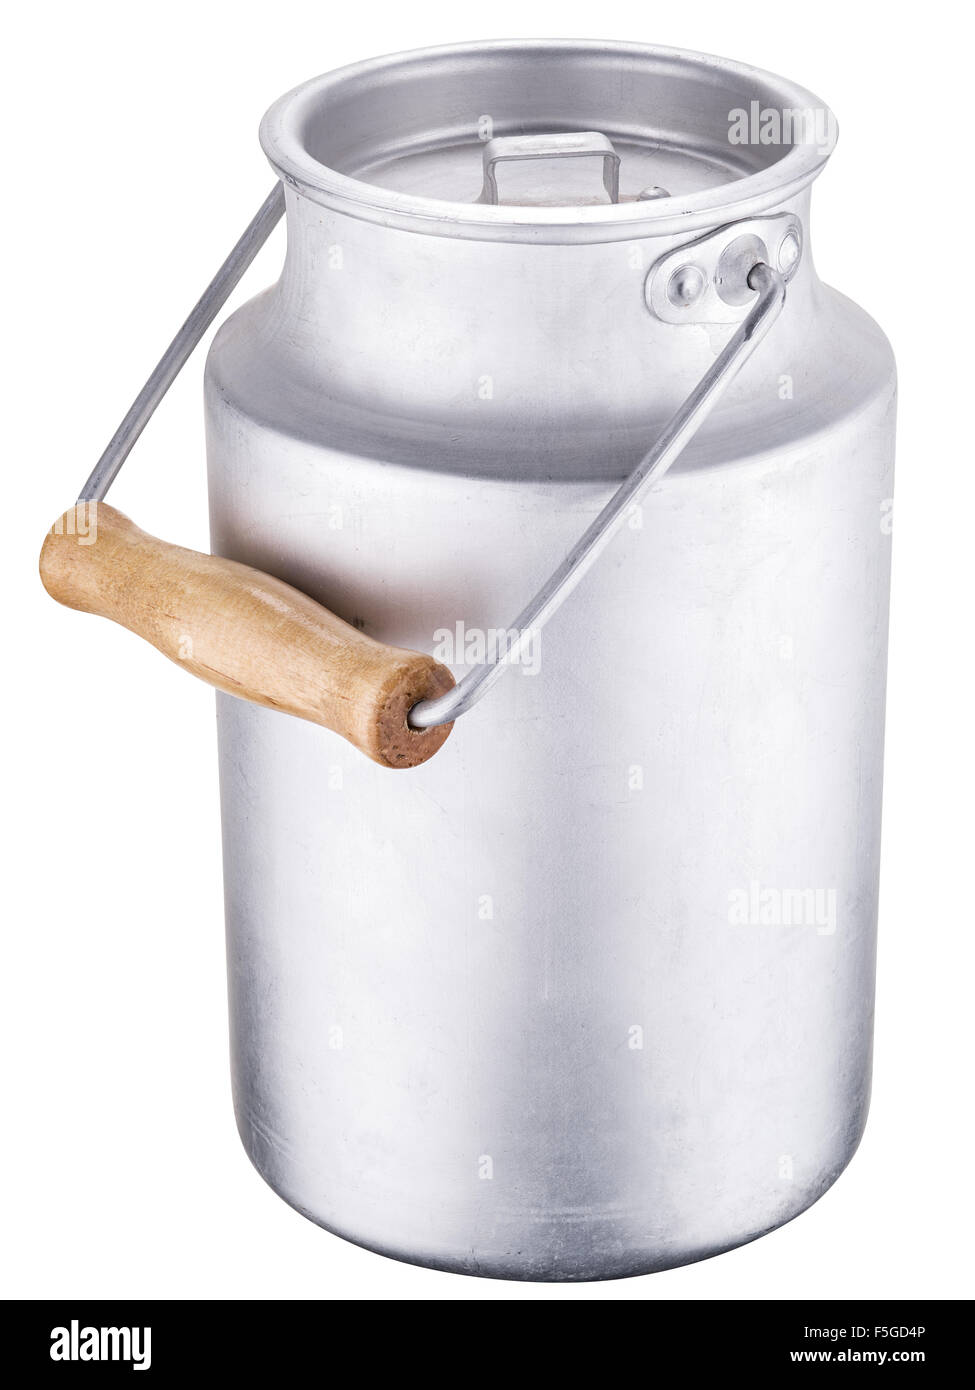 Milk can. File contains clipping paths. - Stock Image